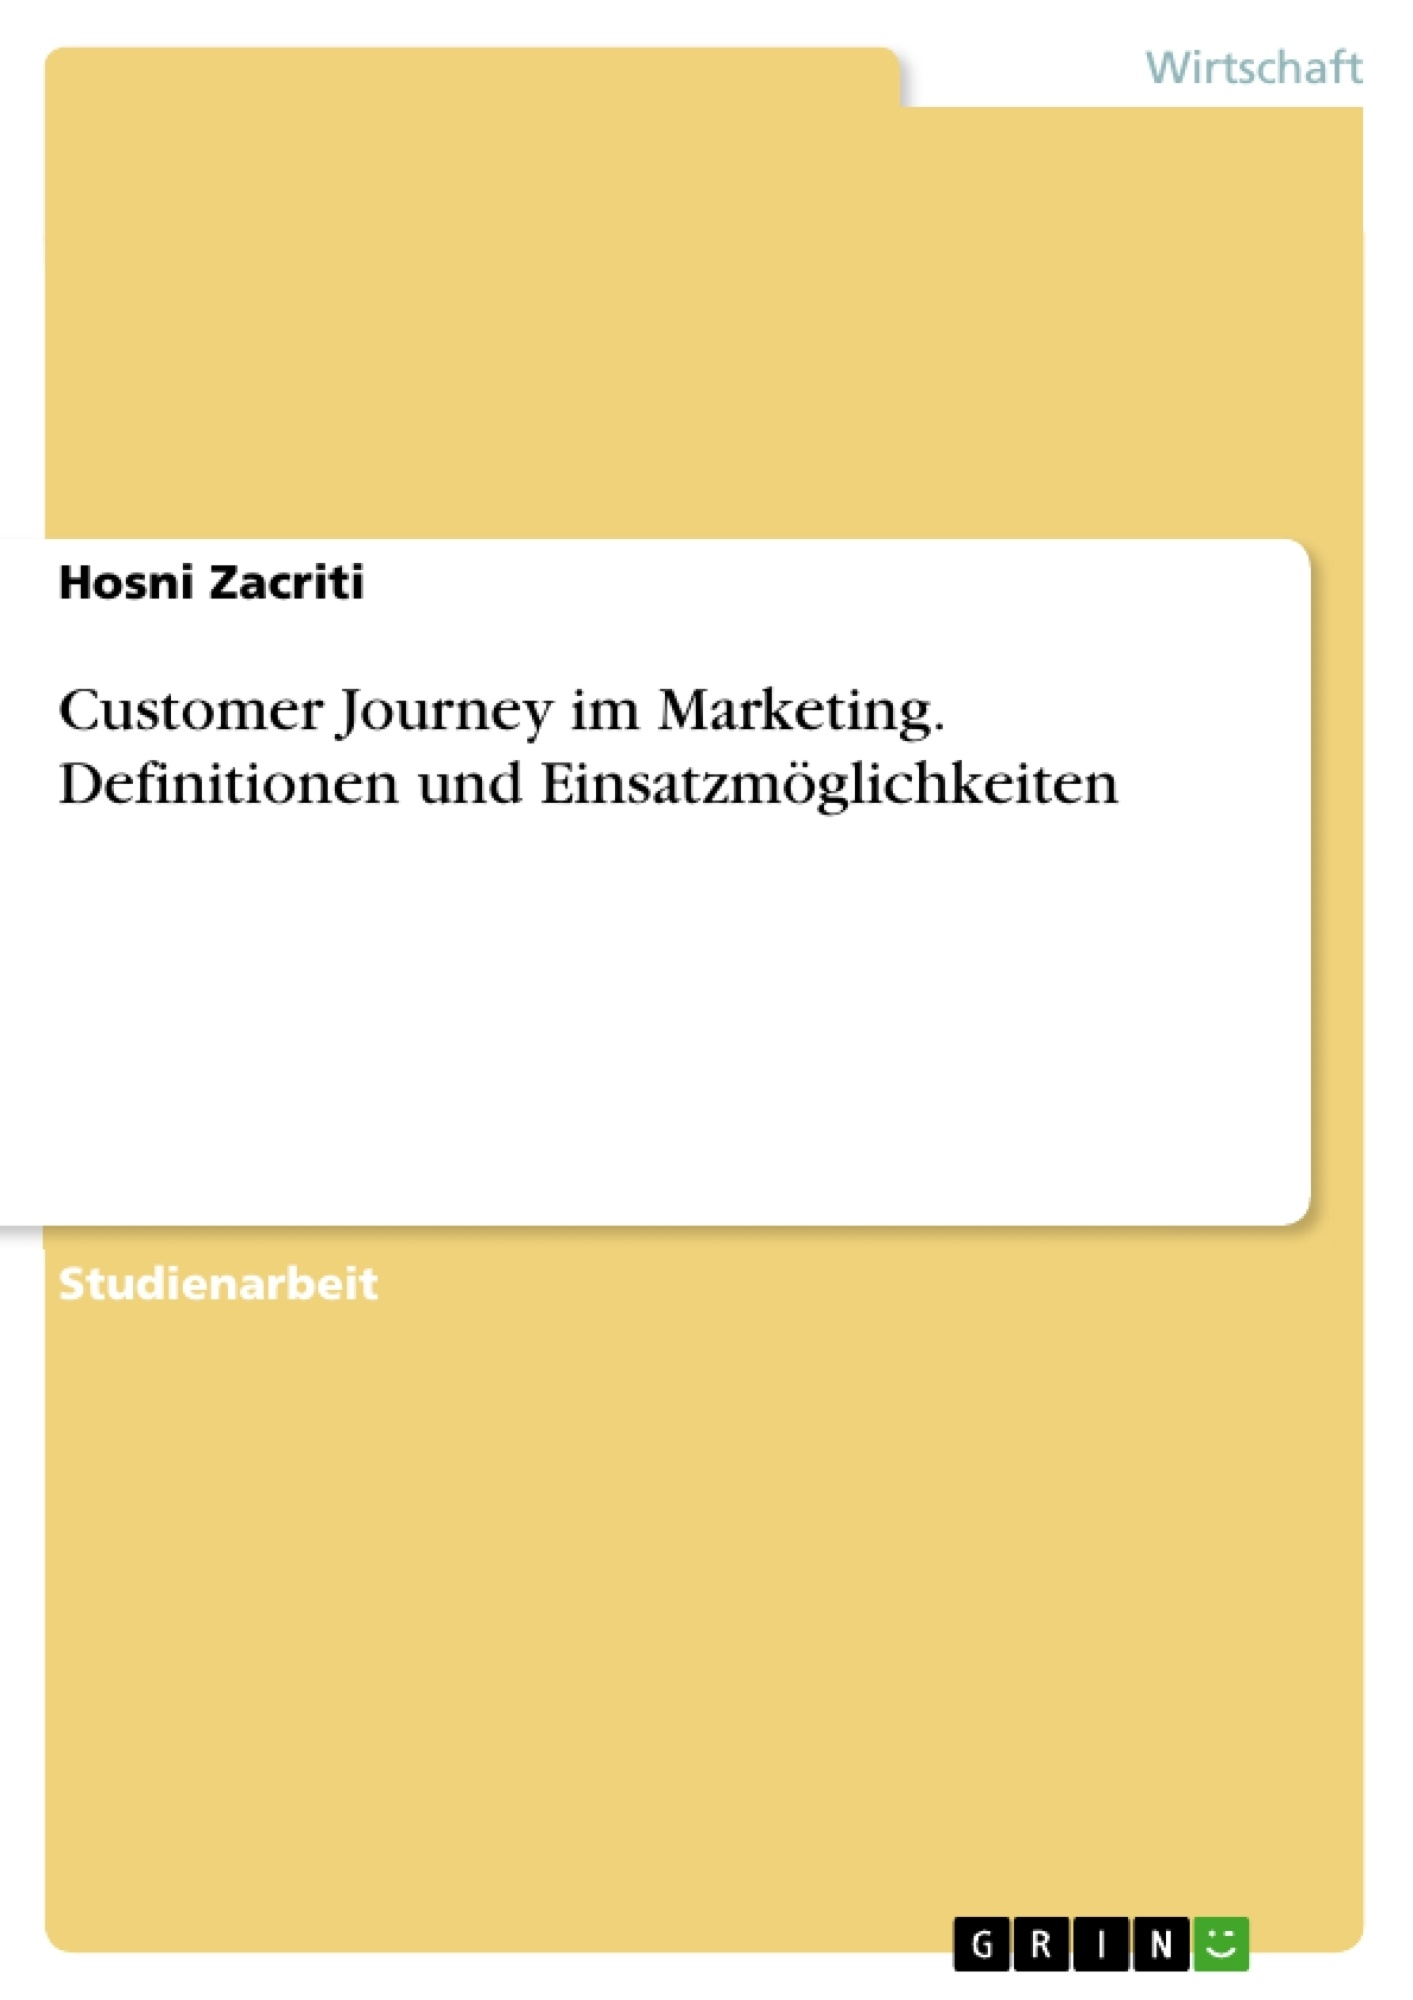 Titel: Customer Journey im Marketing. Definitionen und Einsatzmöglichkeiten